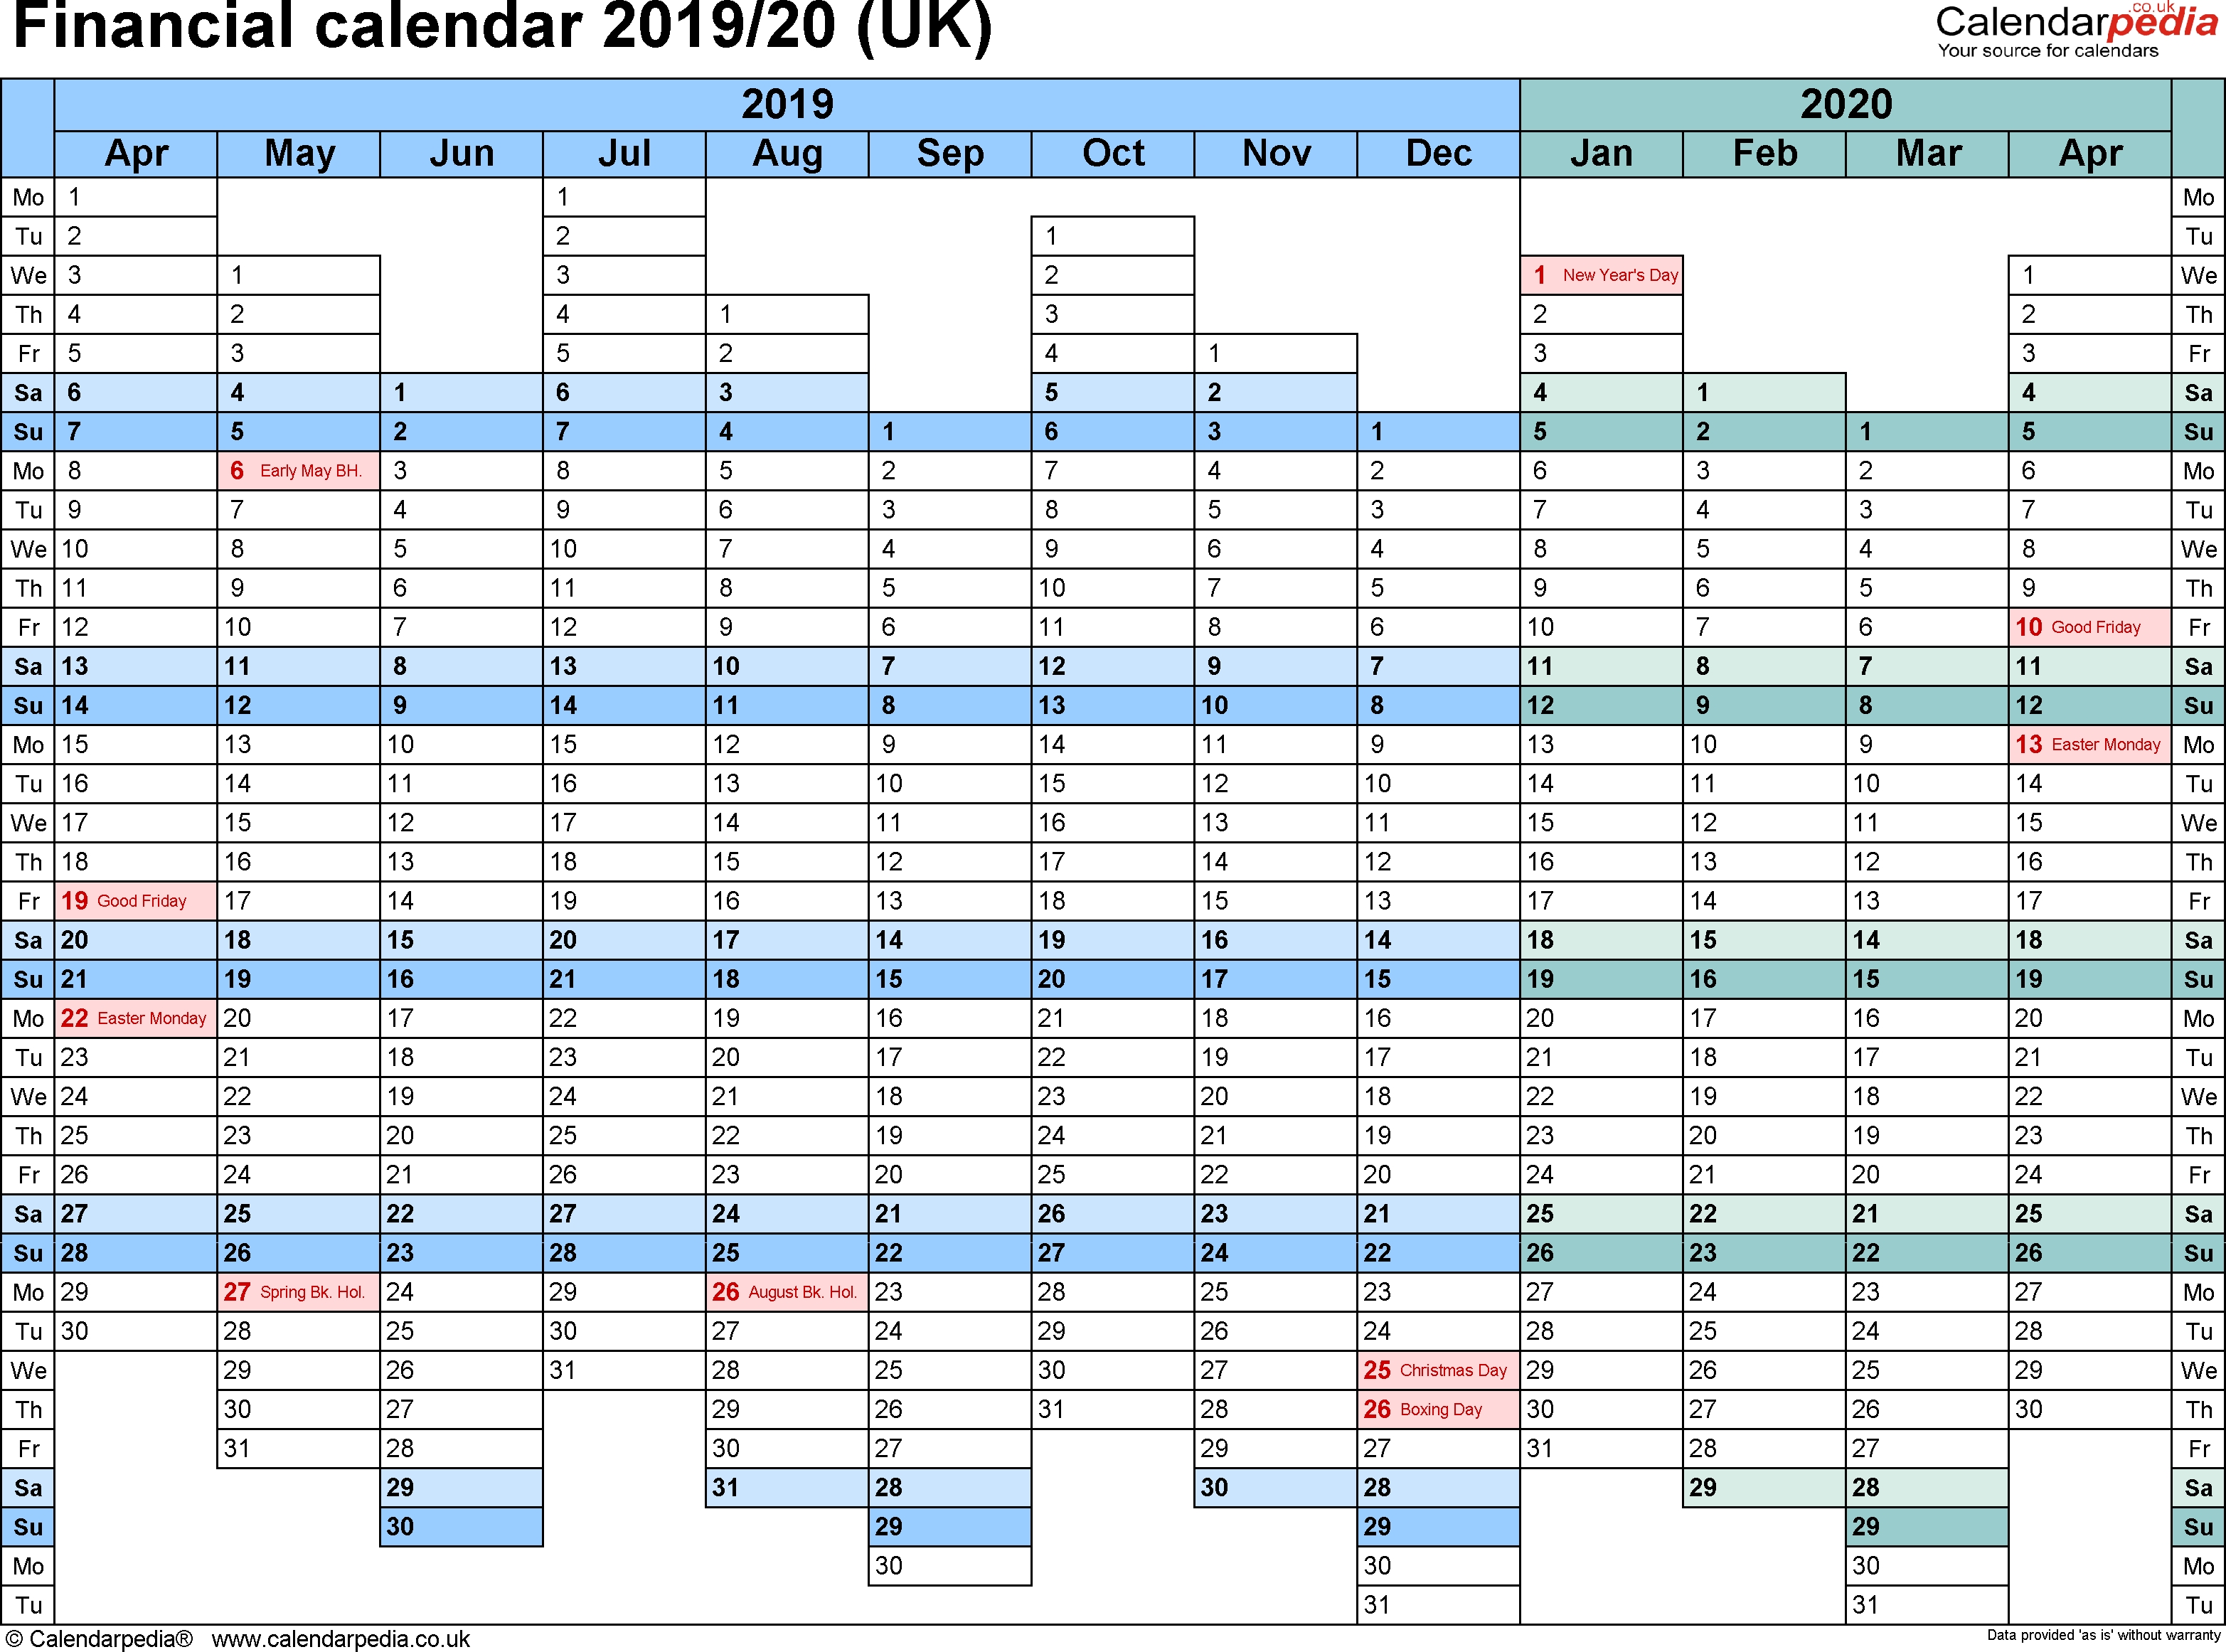 Financial Calendars 2019/20 (Uk) In Pdf Format pertaining to Tax Calendar 2019/2020